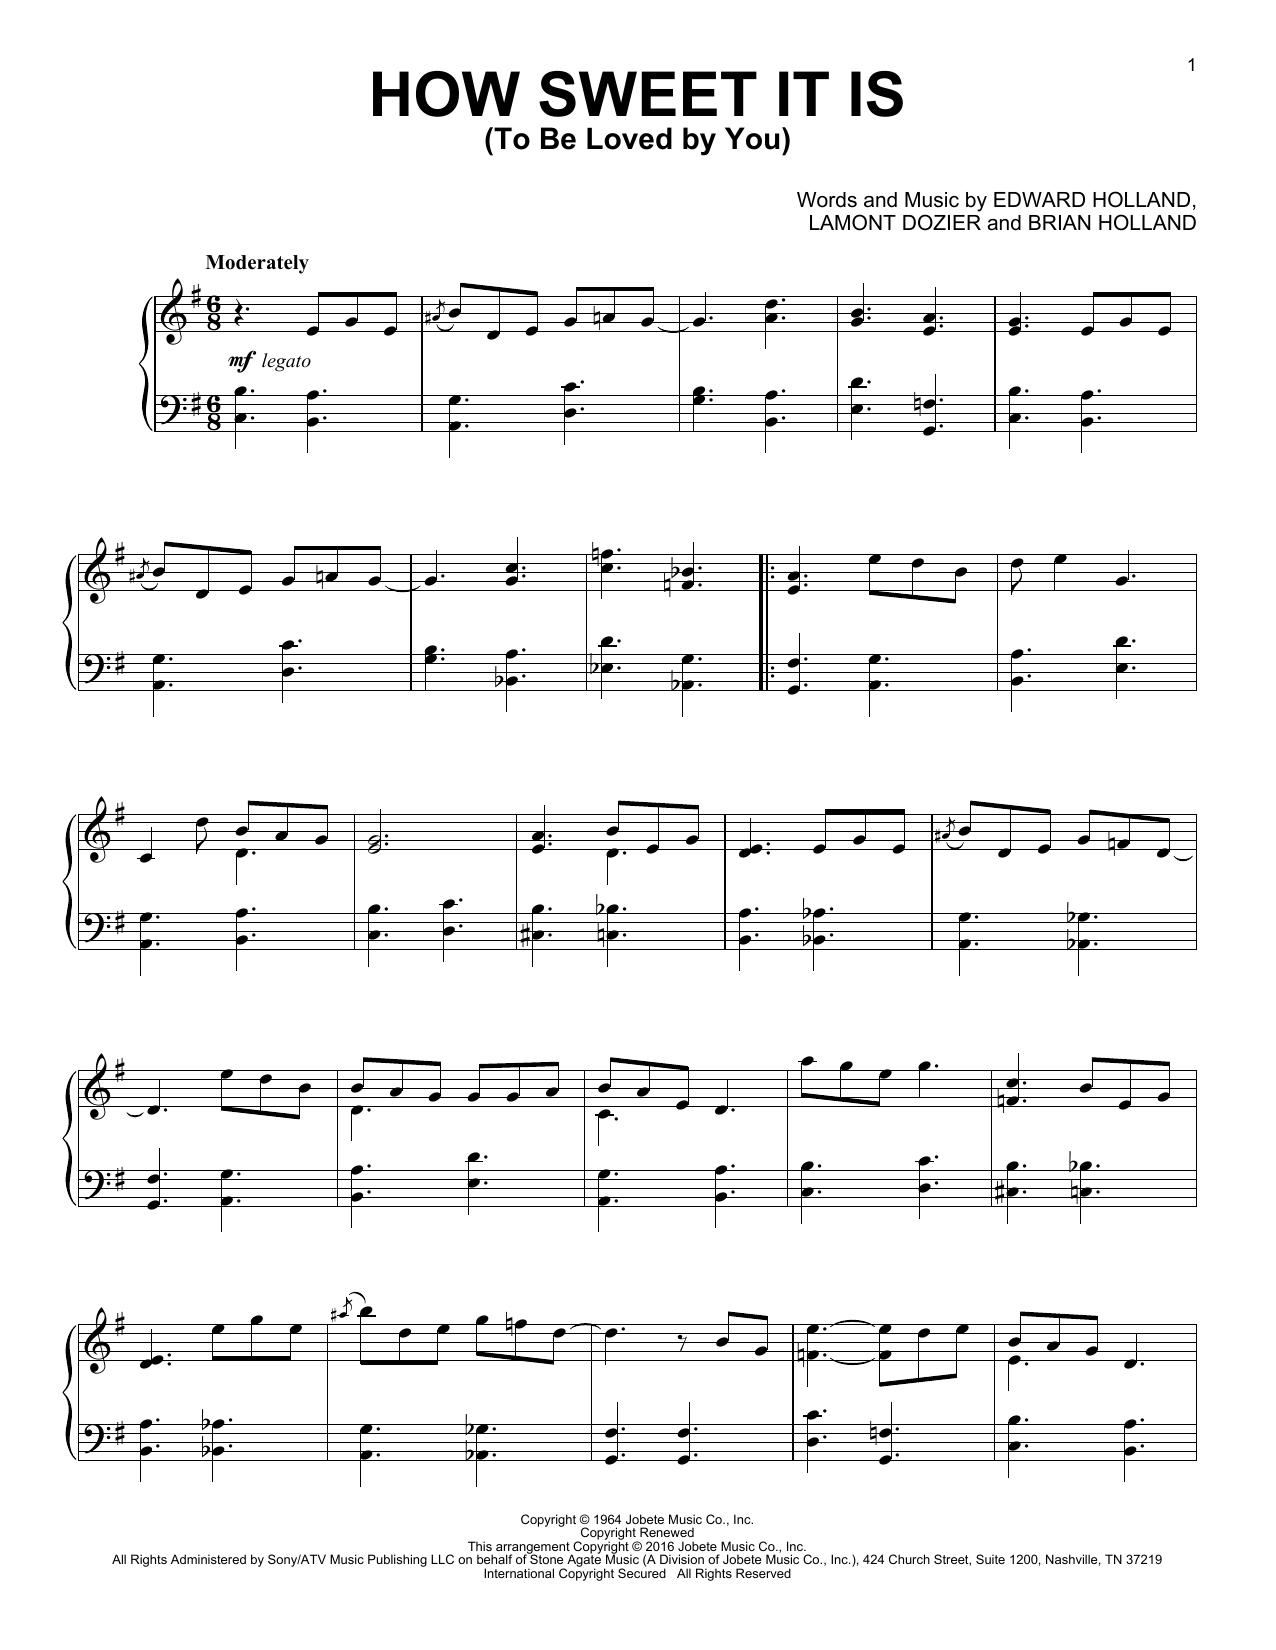 James Taylor How Sweet It Is (To Be Loved By You) [Jazz version] sheet music notes and chords. Download Printable PDF.